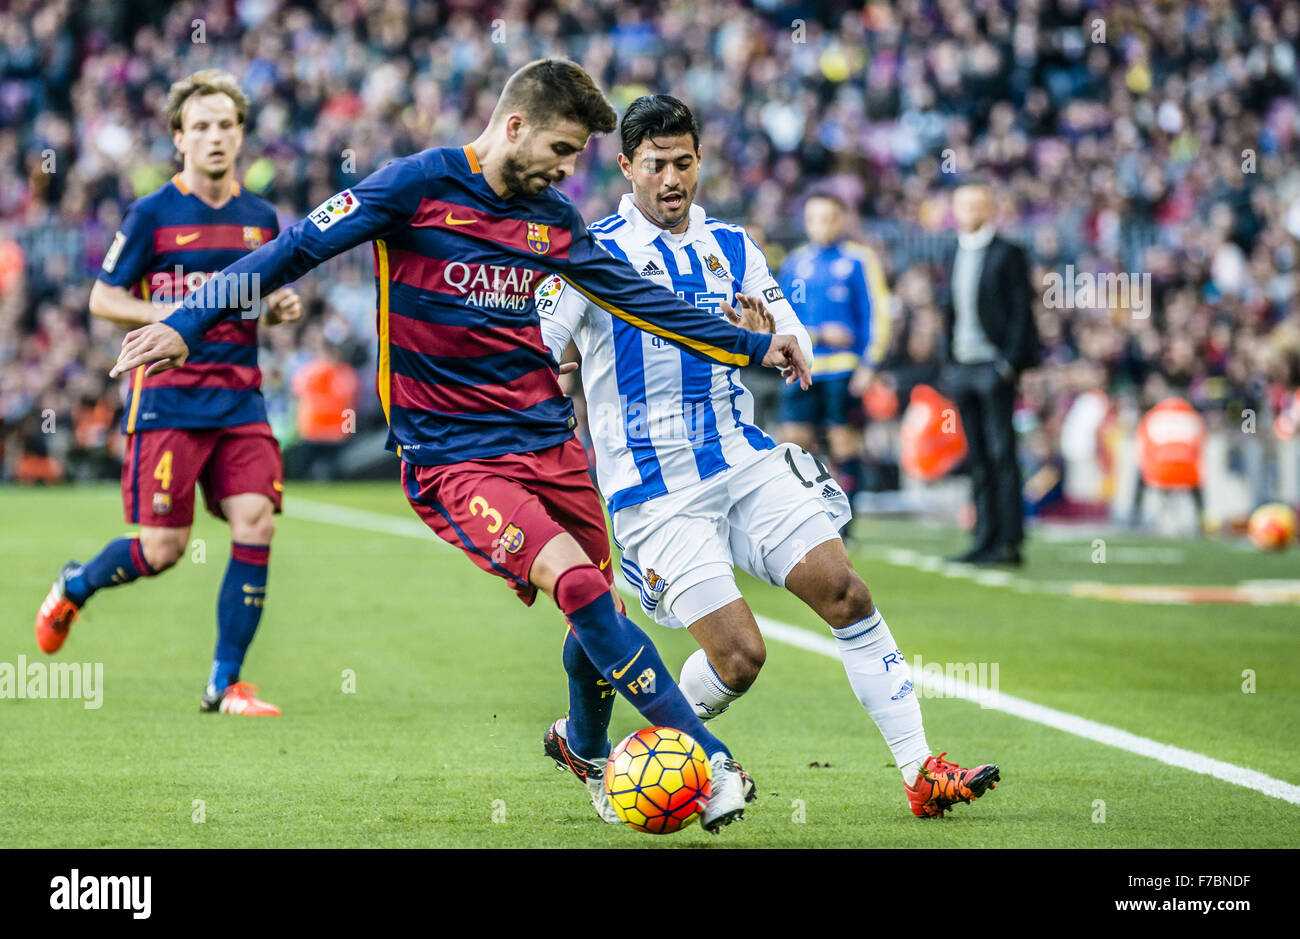 Barcelona, Catalonia, Spain. 28th Nov, 2015. FC Barcelona's defender competes for the ball during the league - Stock Image